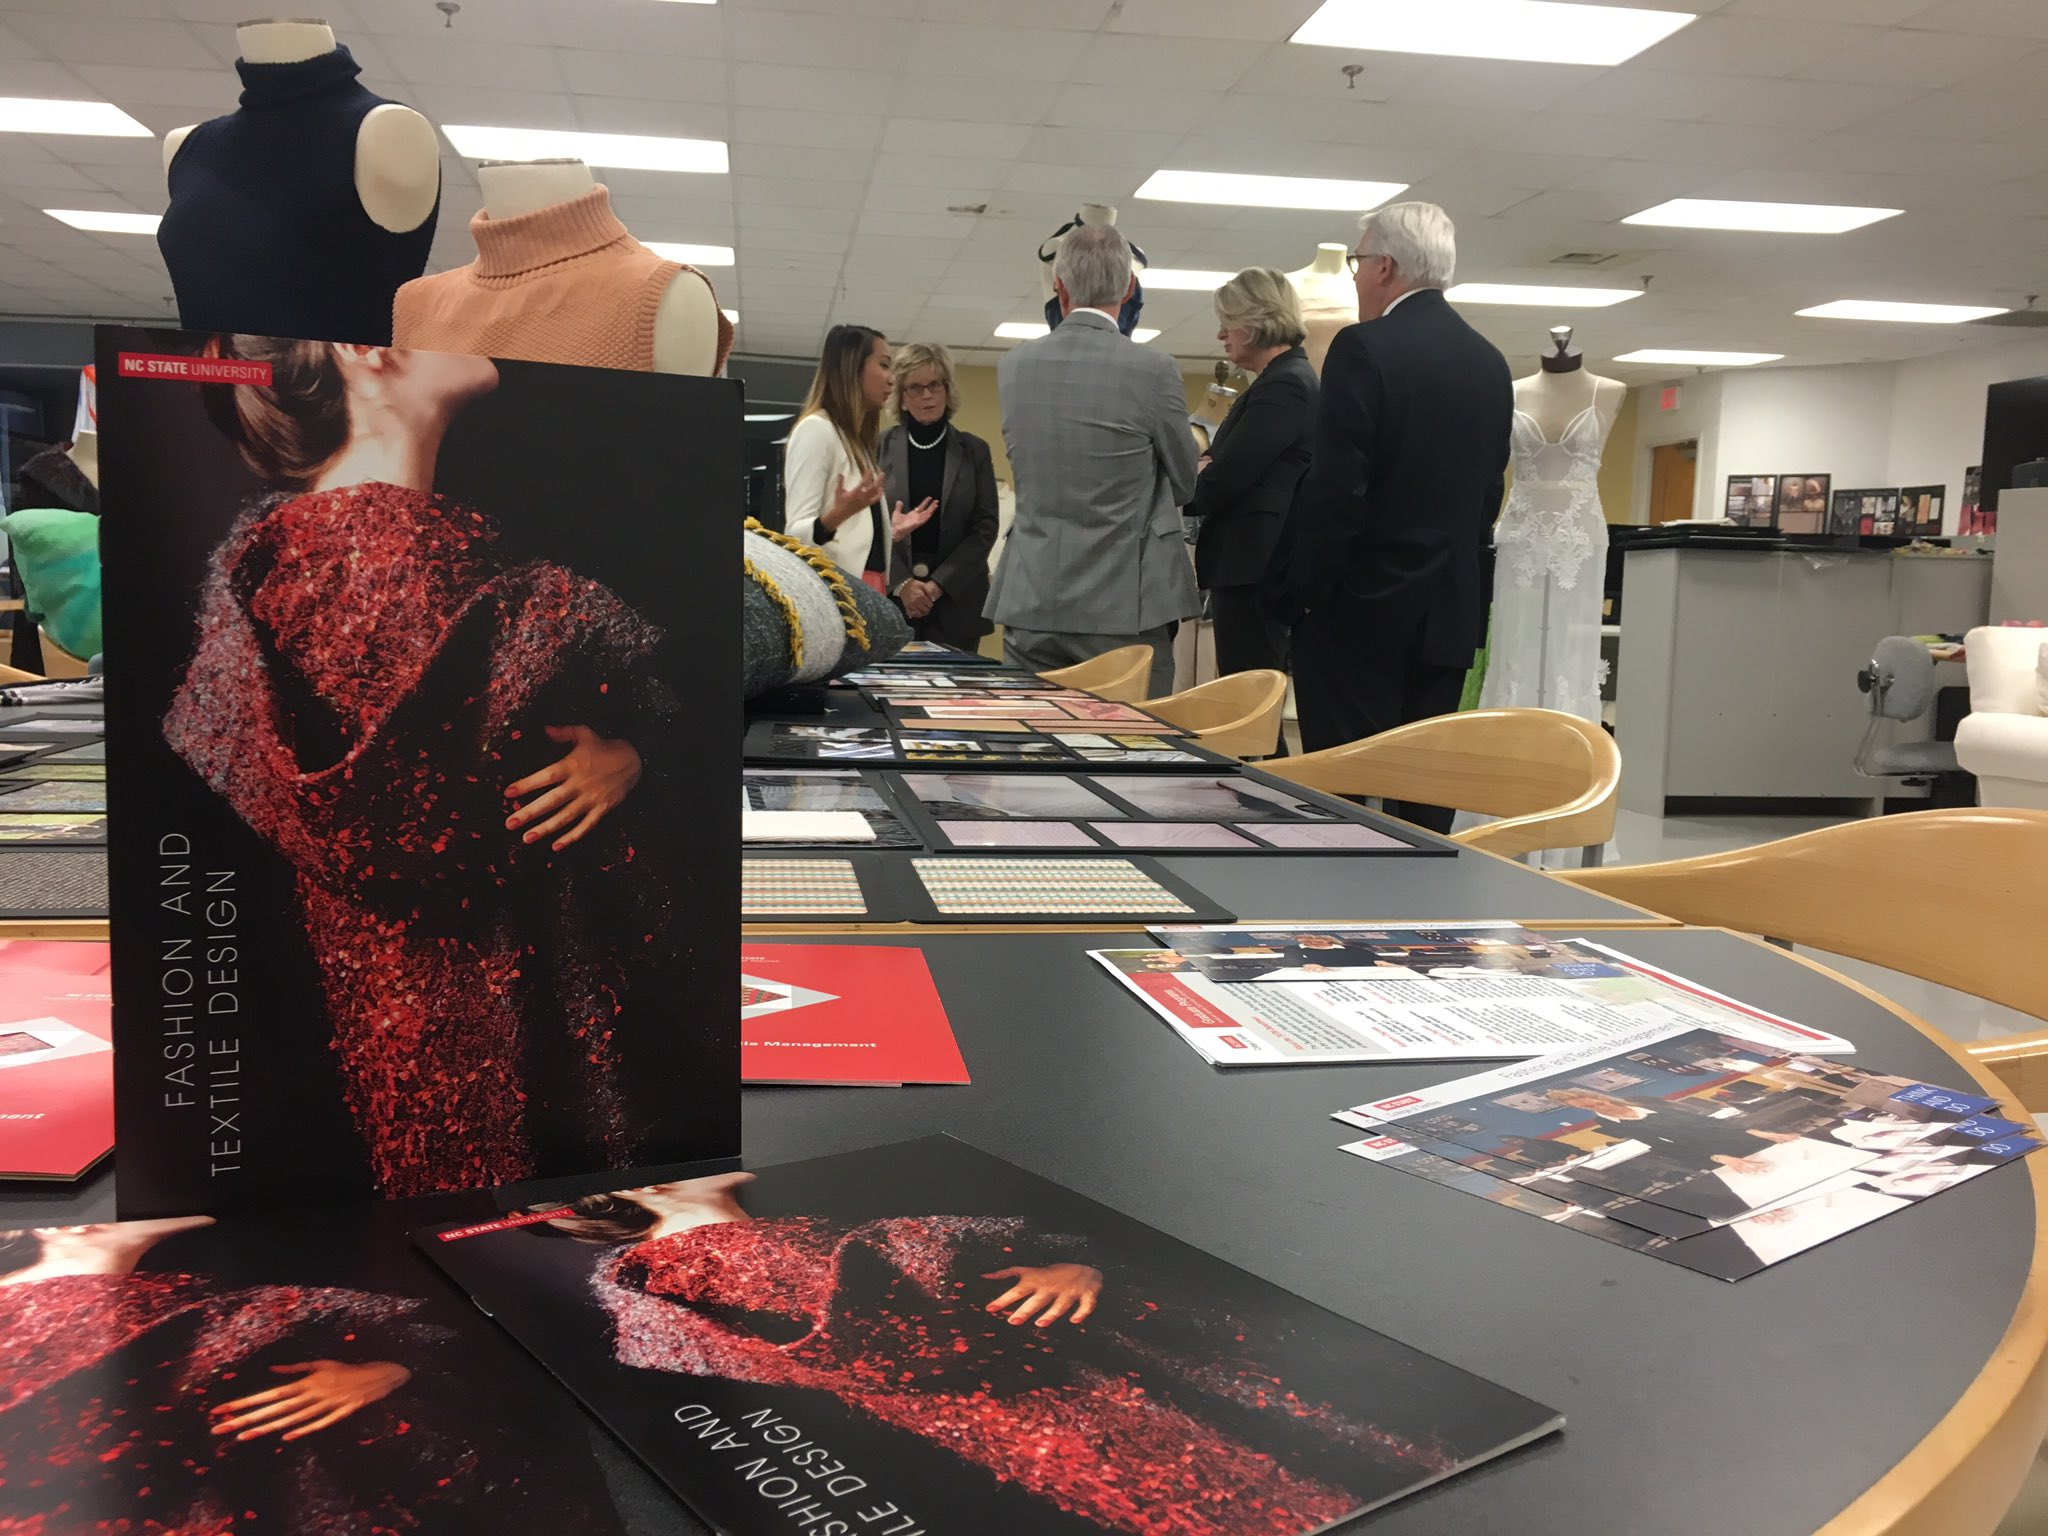 Wilson College Of Textiles On Twitter Ftd Senior Lisa Hoang Talks With Chancellor Woodson David Hinks And Margaretedu About Her Nyfw Experience Wemakeamazing Https T Co Ula4k2o7hw